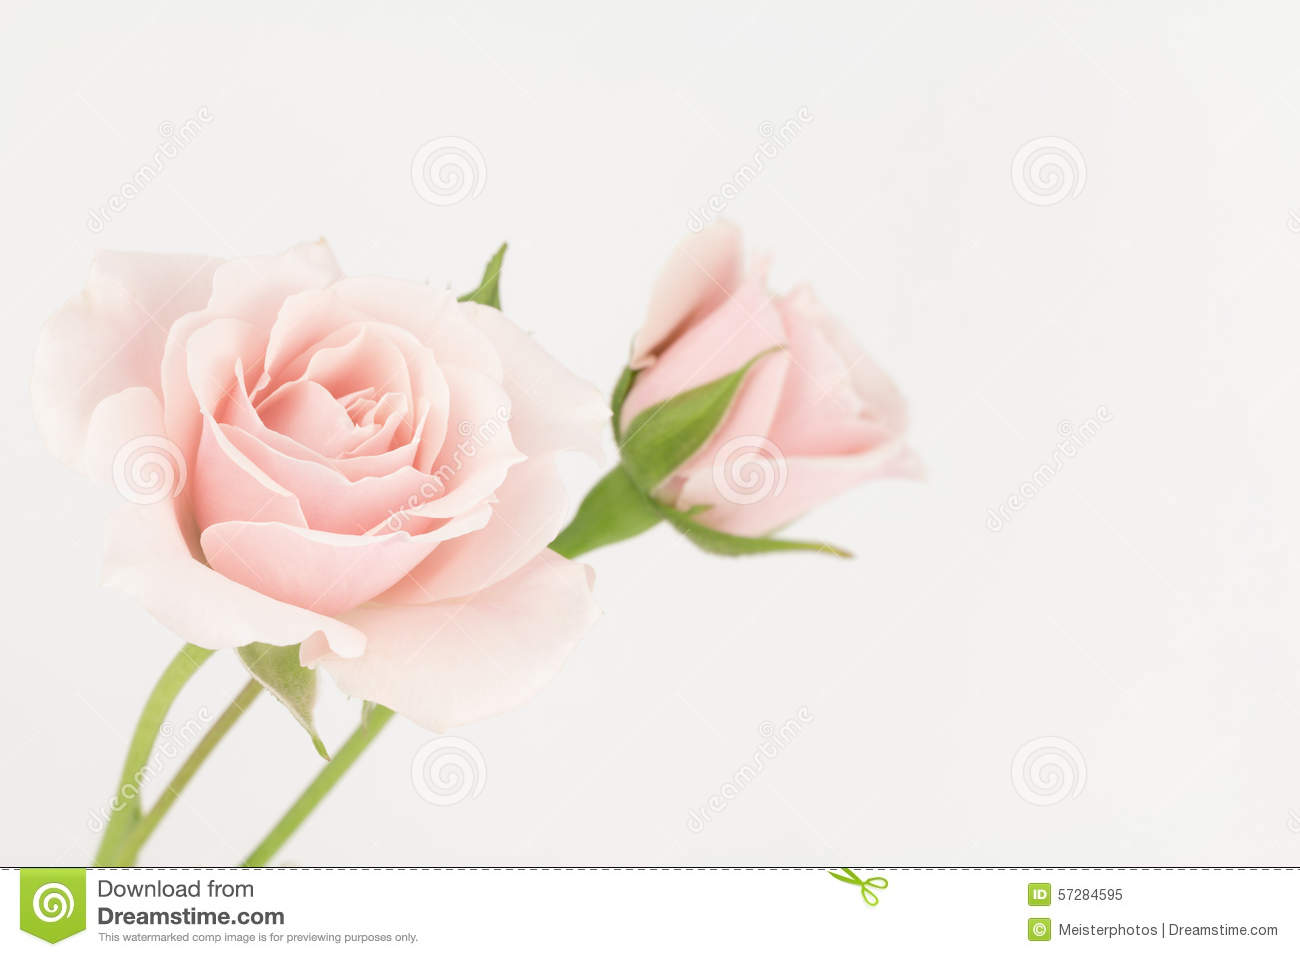 pale pastel pink roses stock image image of roses pale 57284595. Black Bedroom Furniture Sets. Home Design Ideas